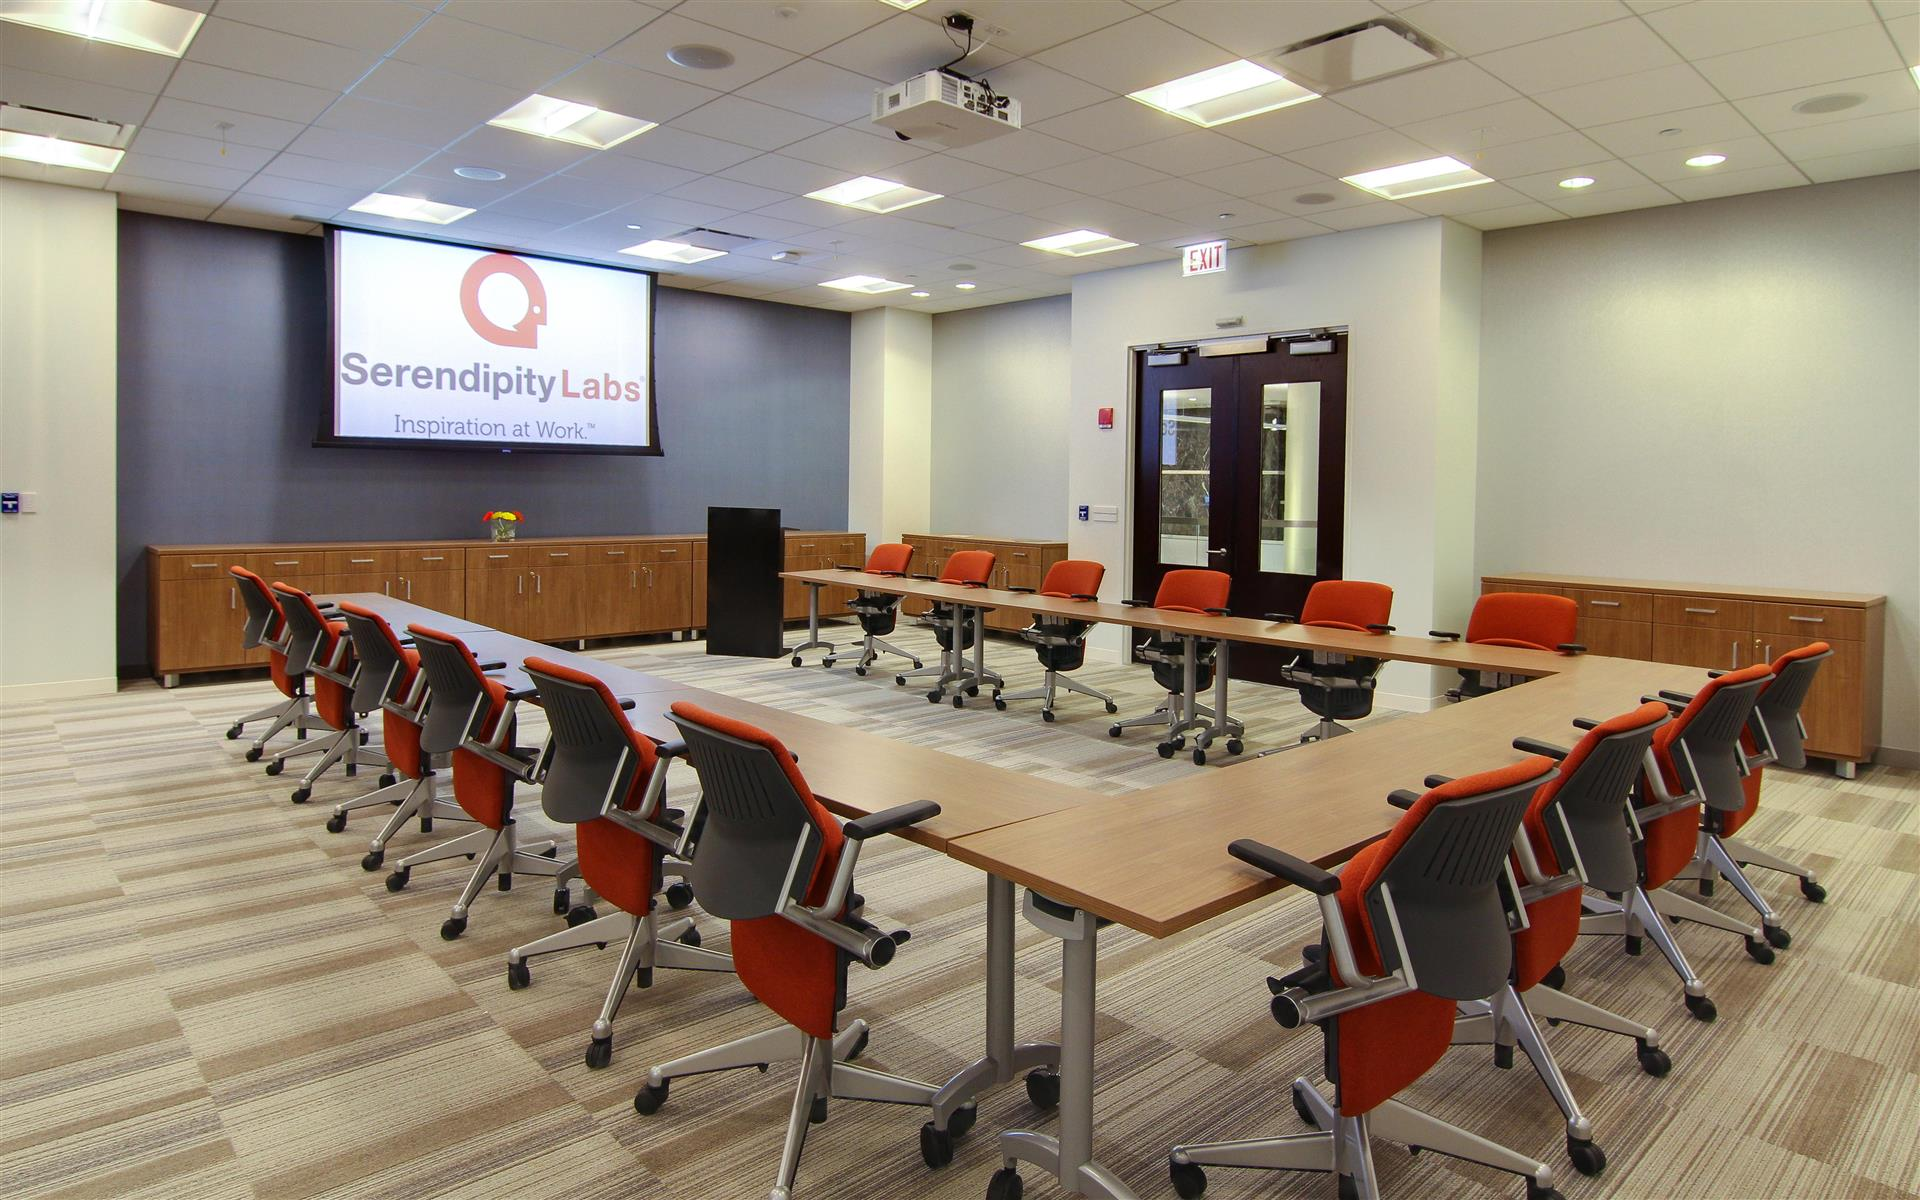 Serendipity Labs - Chicago Loop - Conference space in Loop 1/2 day at $549